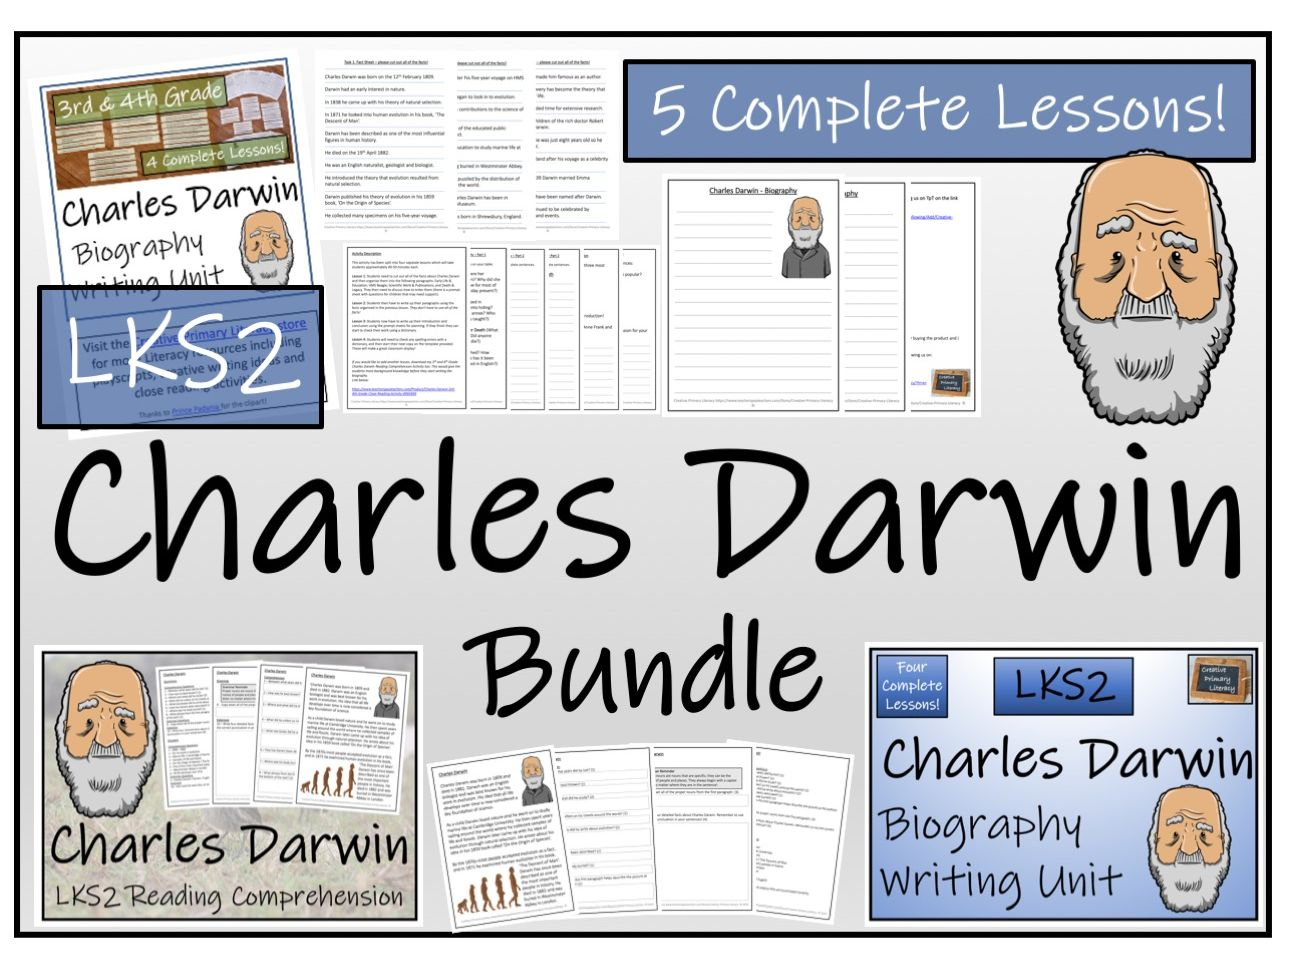 LKS2 Science - Charles Darwin Reading Comprehension & Biography Writing Bundle